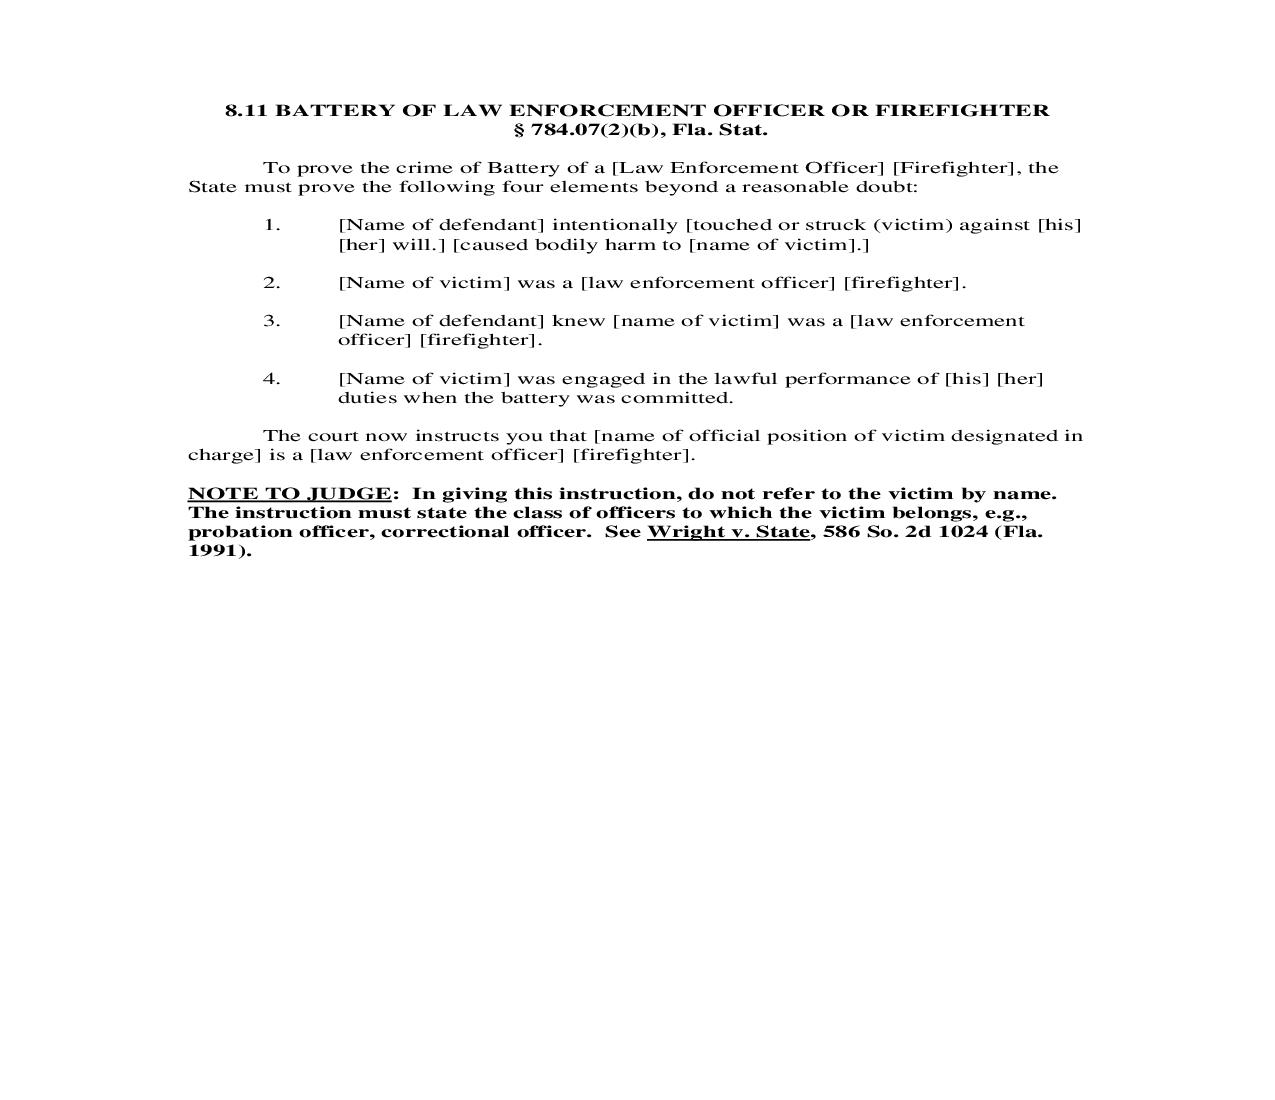 8.11. Battery Of Law Enforcement Officer or Firefighter | Pdf Doc Docx | Florida_JI